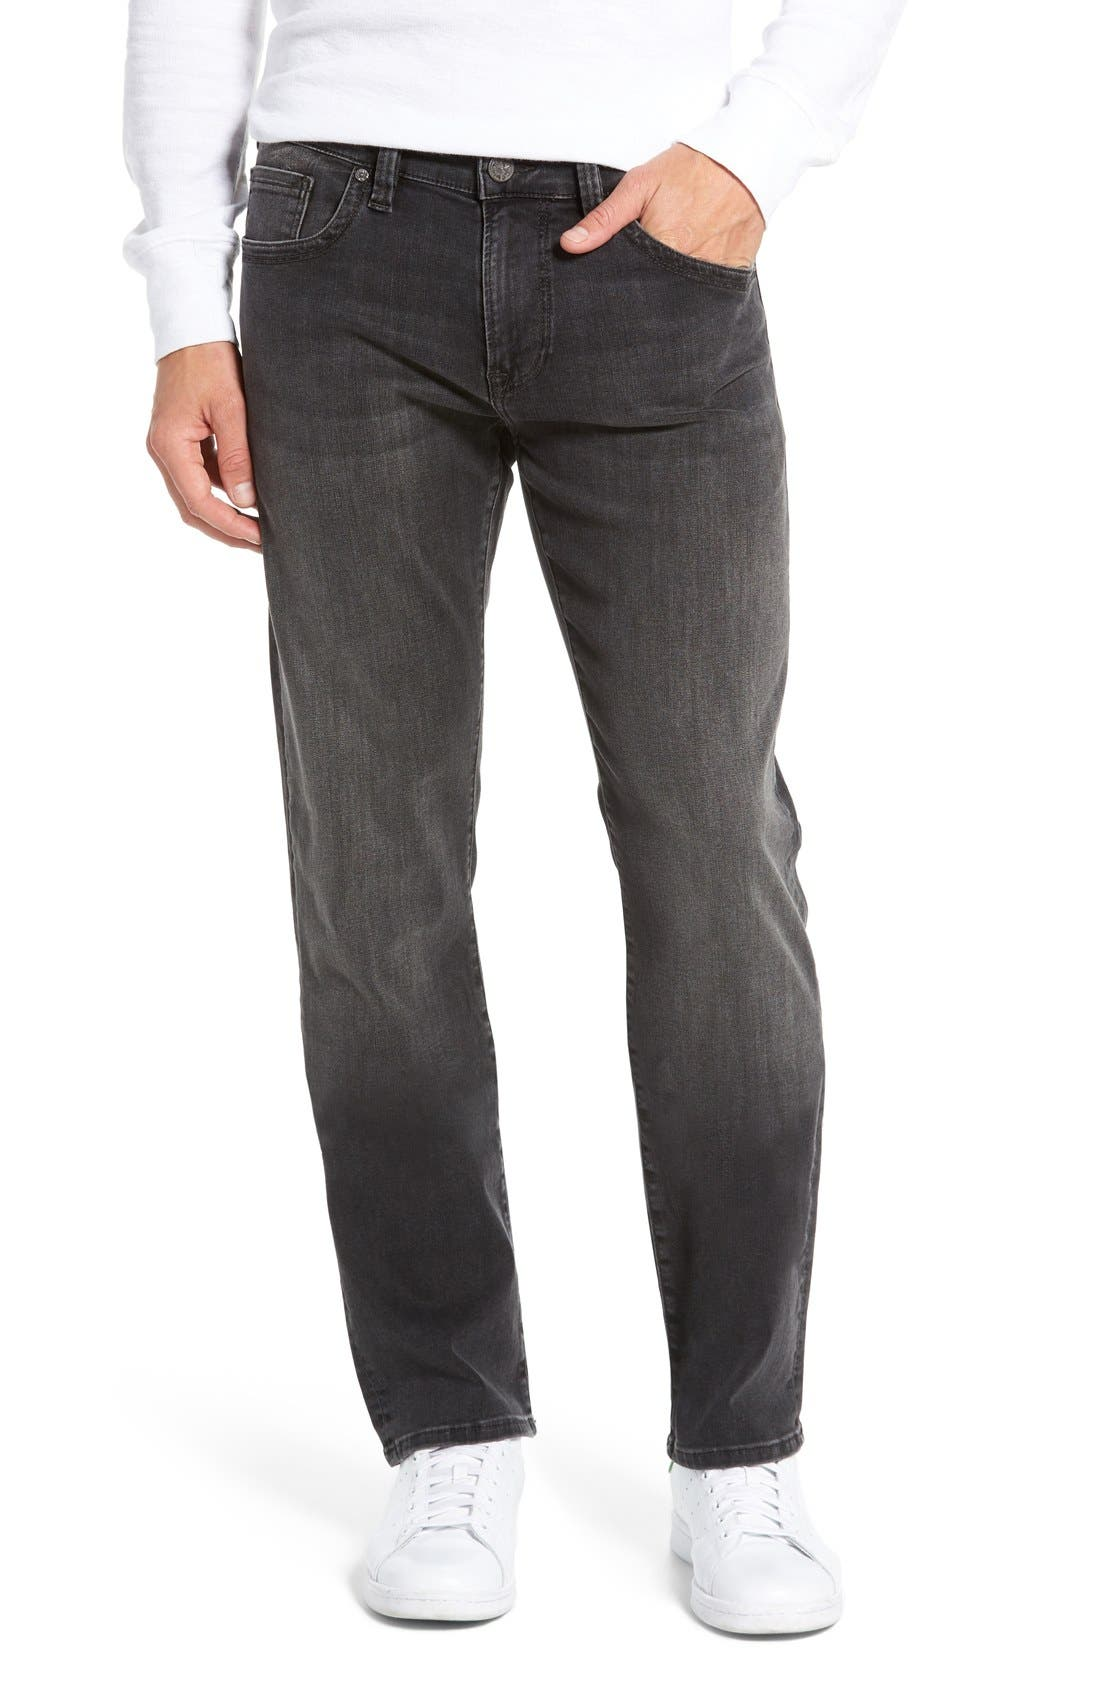 'Courage' Straight Leg Jeans,                             Main thumbnail 1, color,                             COURAGE COAL SOFT